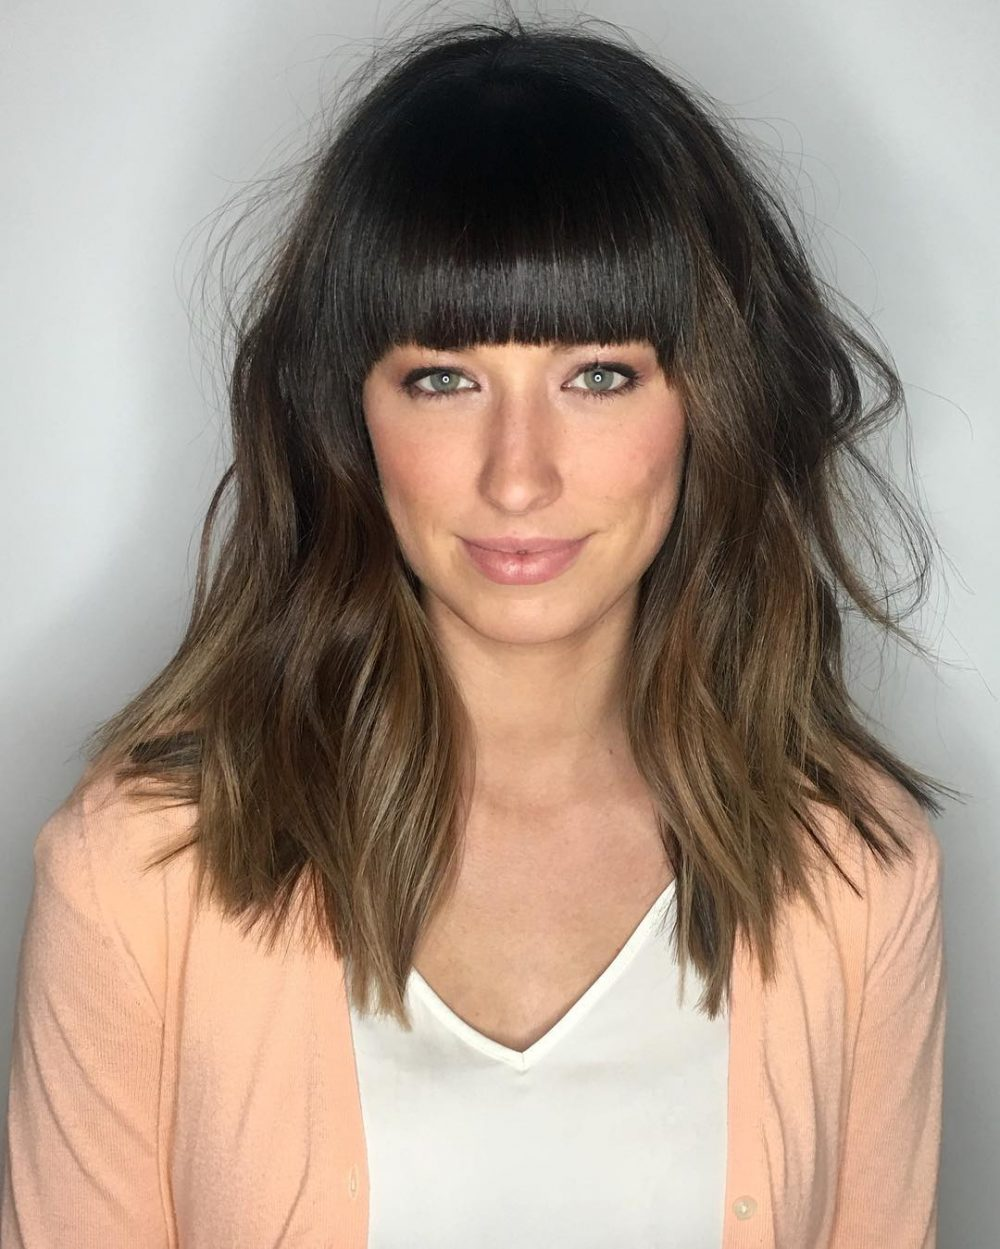 53 popular medium length hairstyles with bangs (updated for 2018)